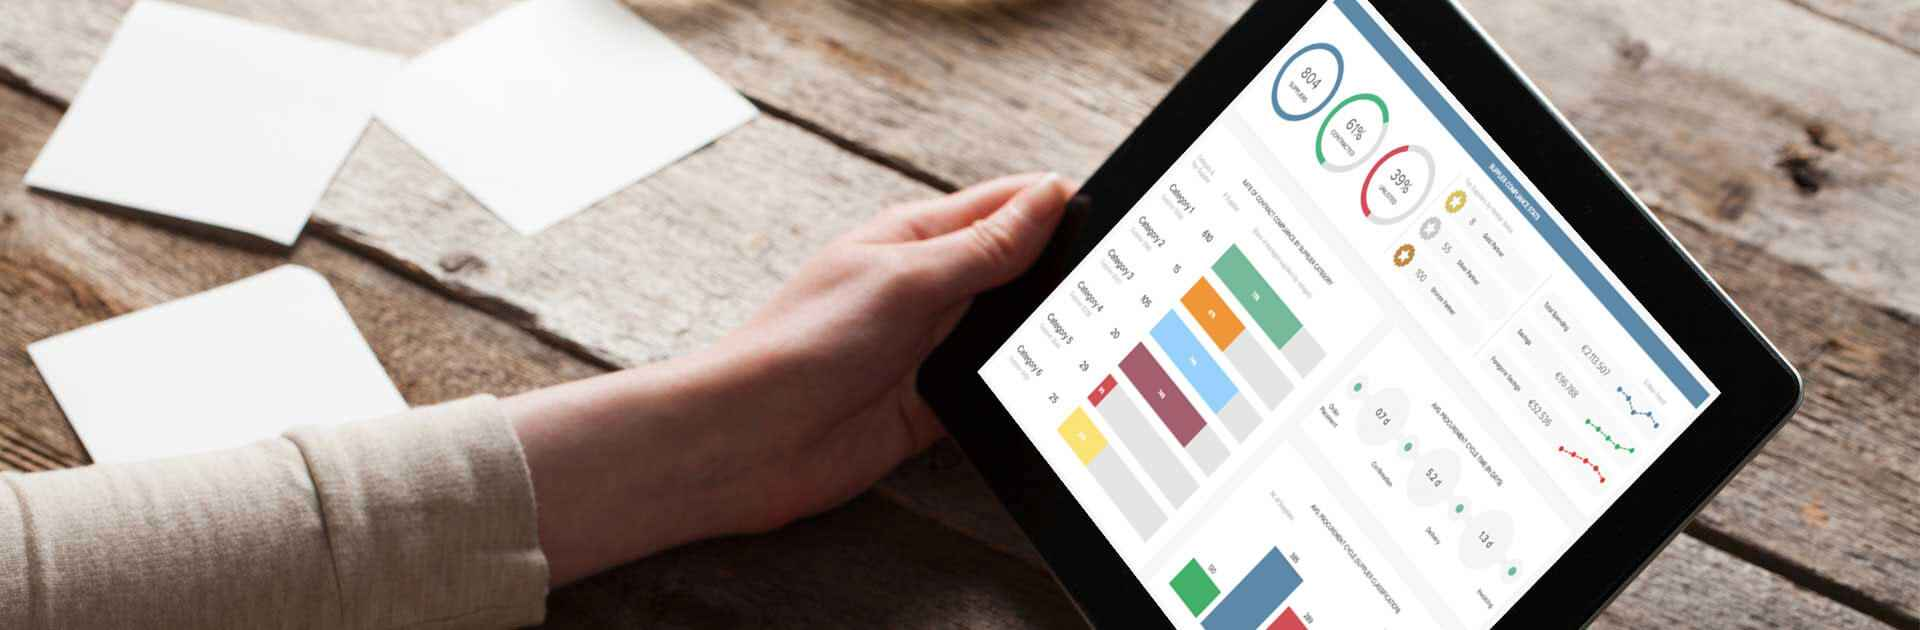 The Best Dashboard Software - Benefit From Online Dashboarding